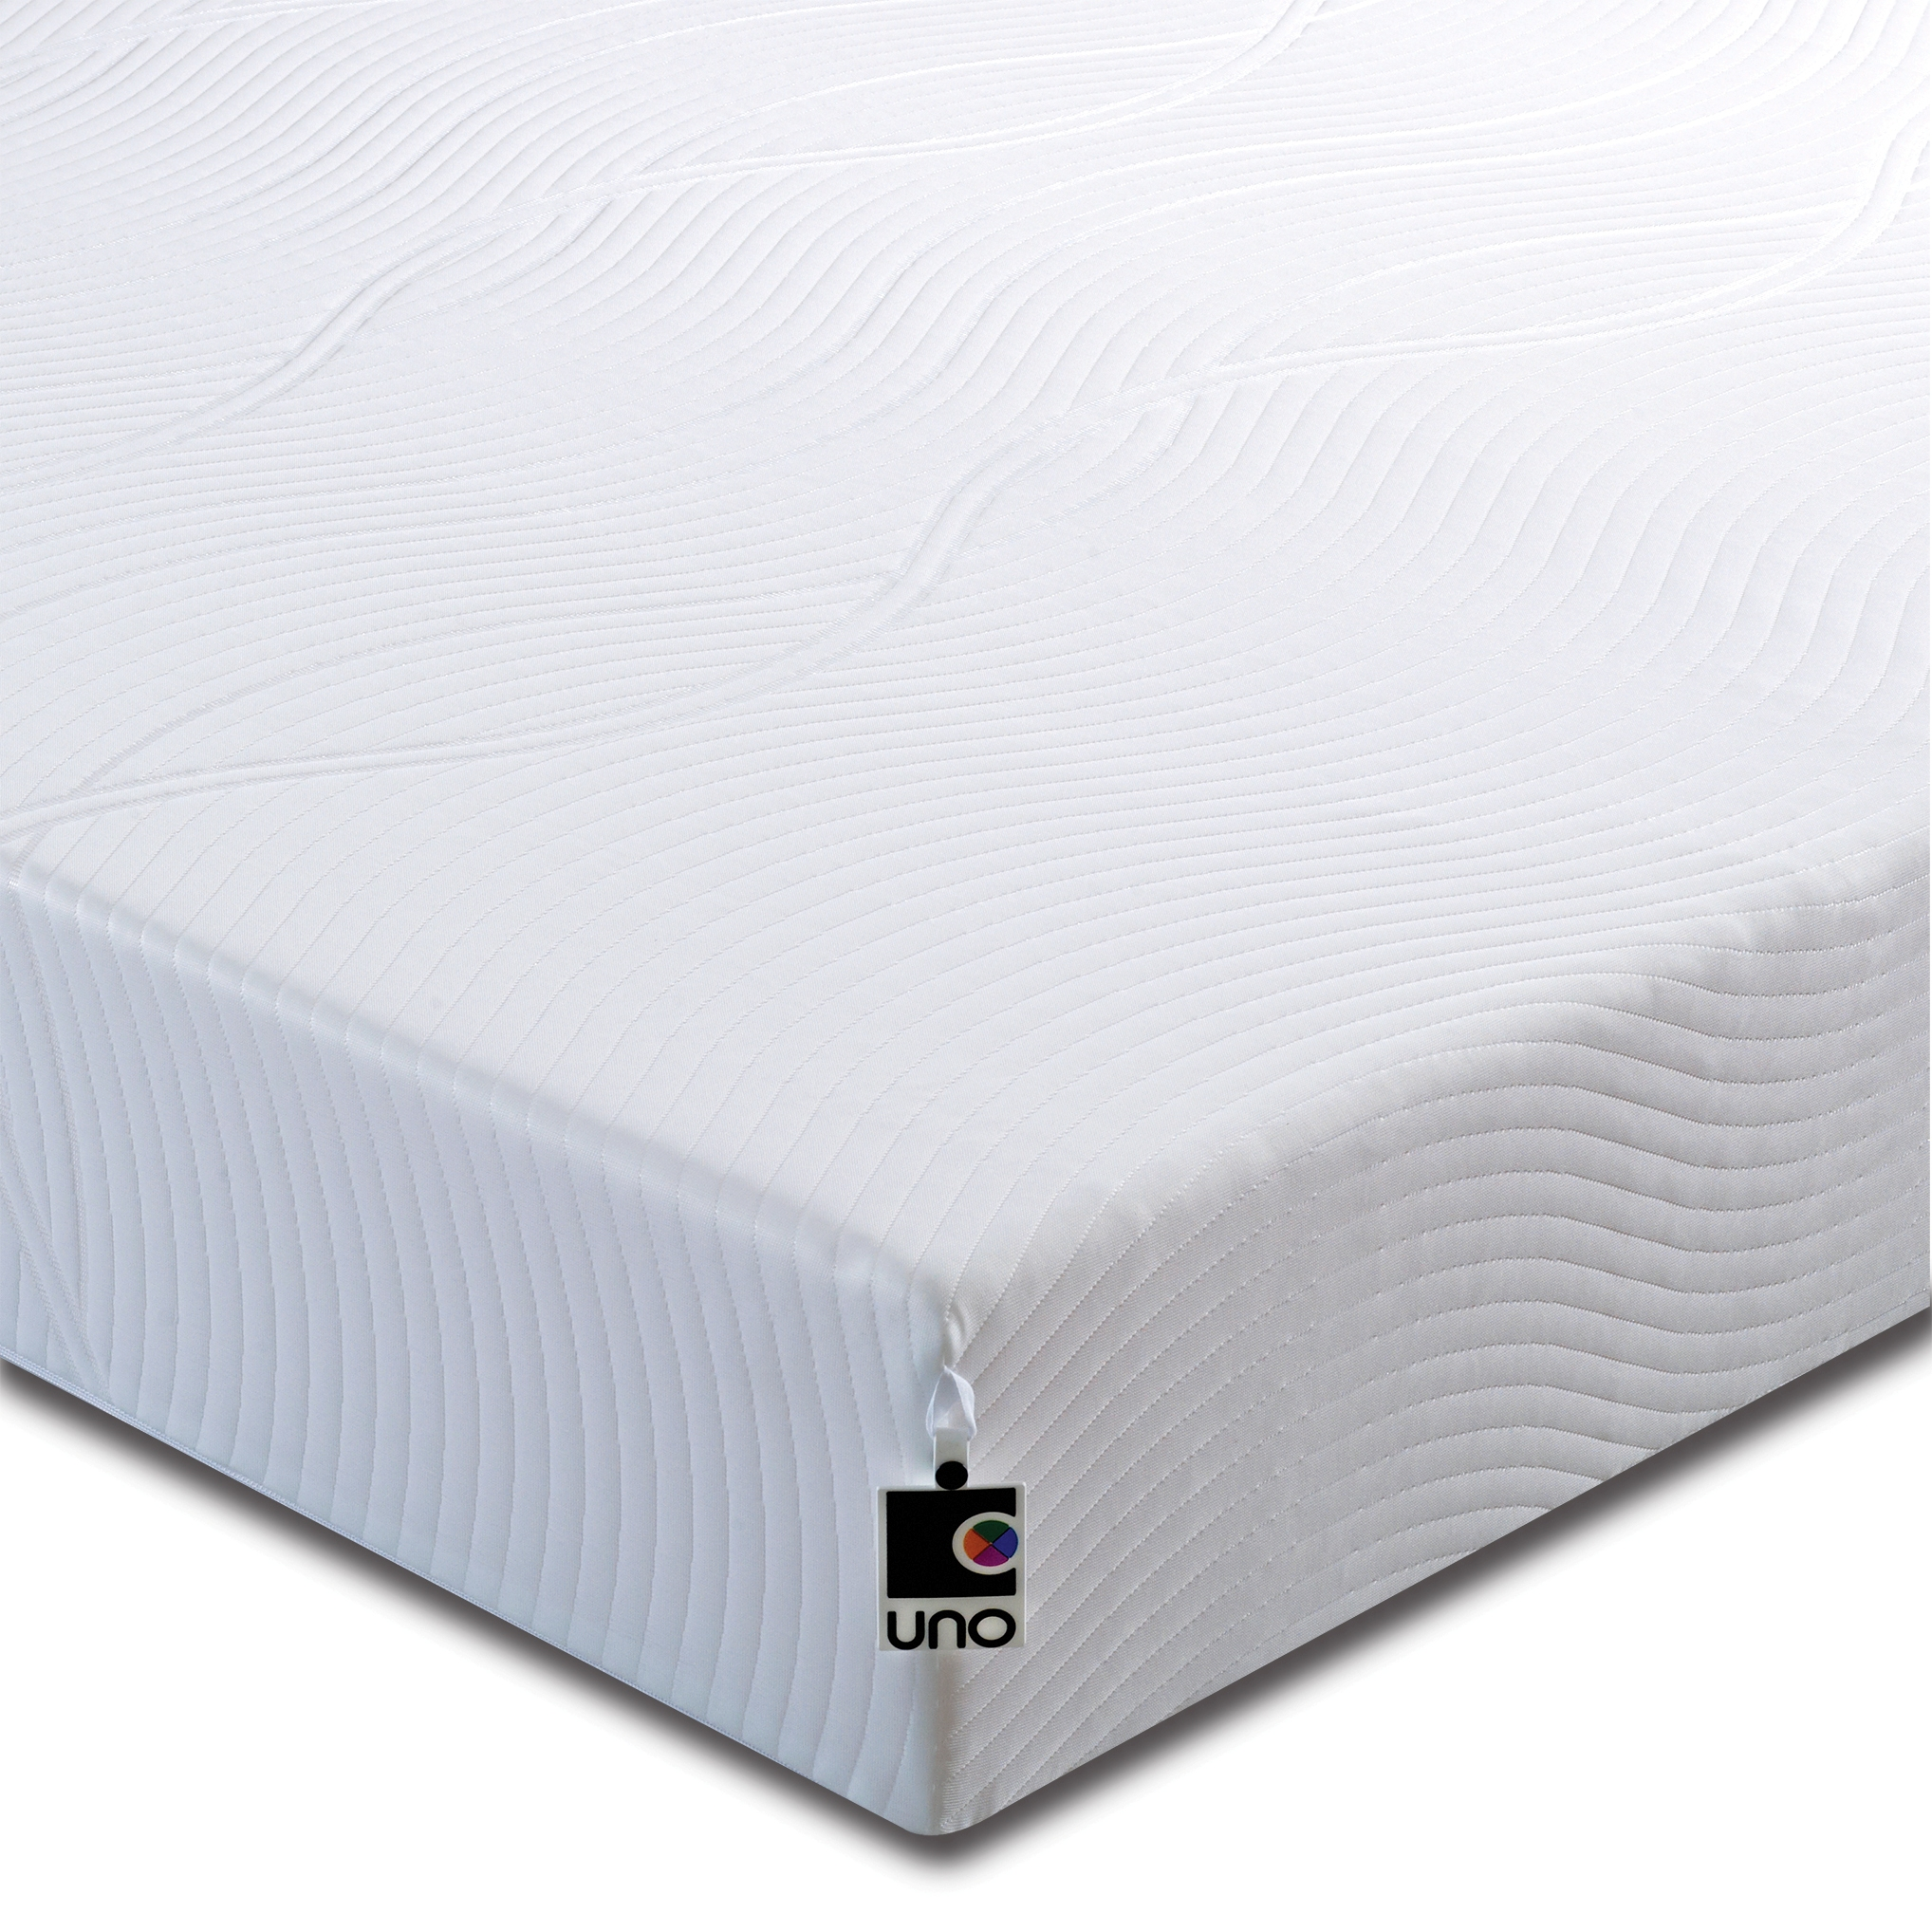 Uno single revive memory mattress